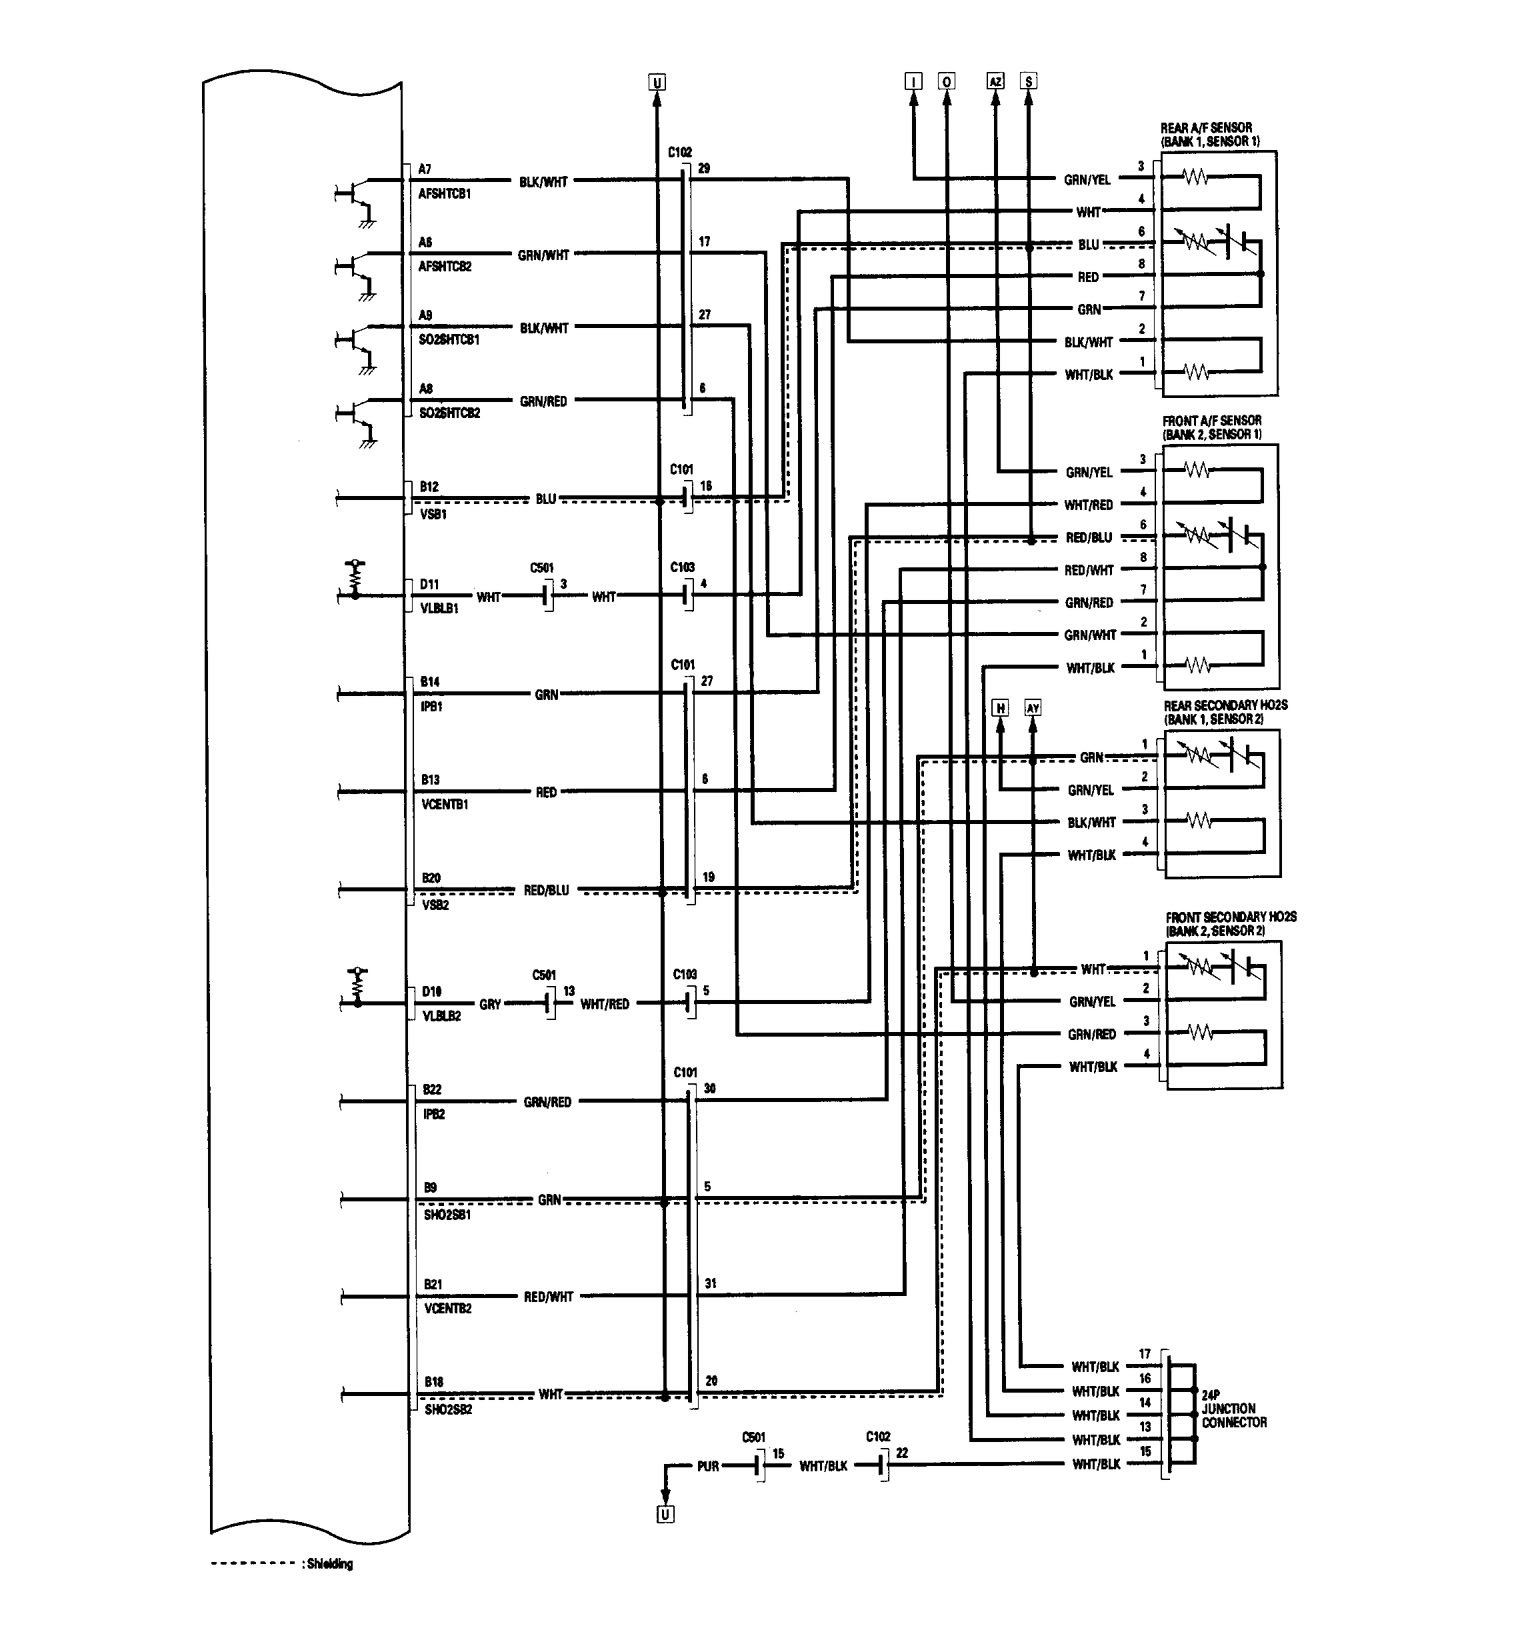 hight resolution of amusing wiring diagram 2006 acura rl ideas best image 2002 rsx fuse box diagram 2002 rsx